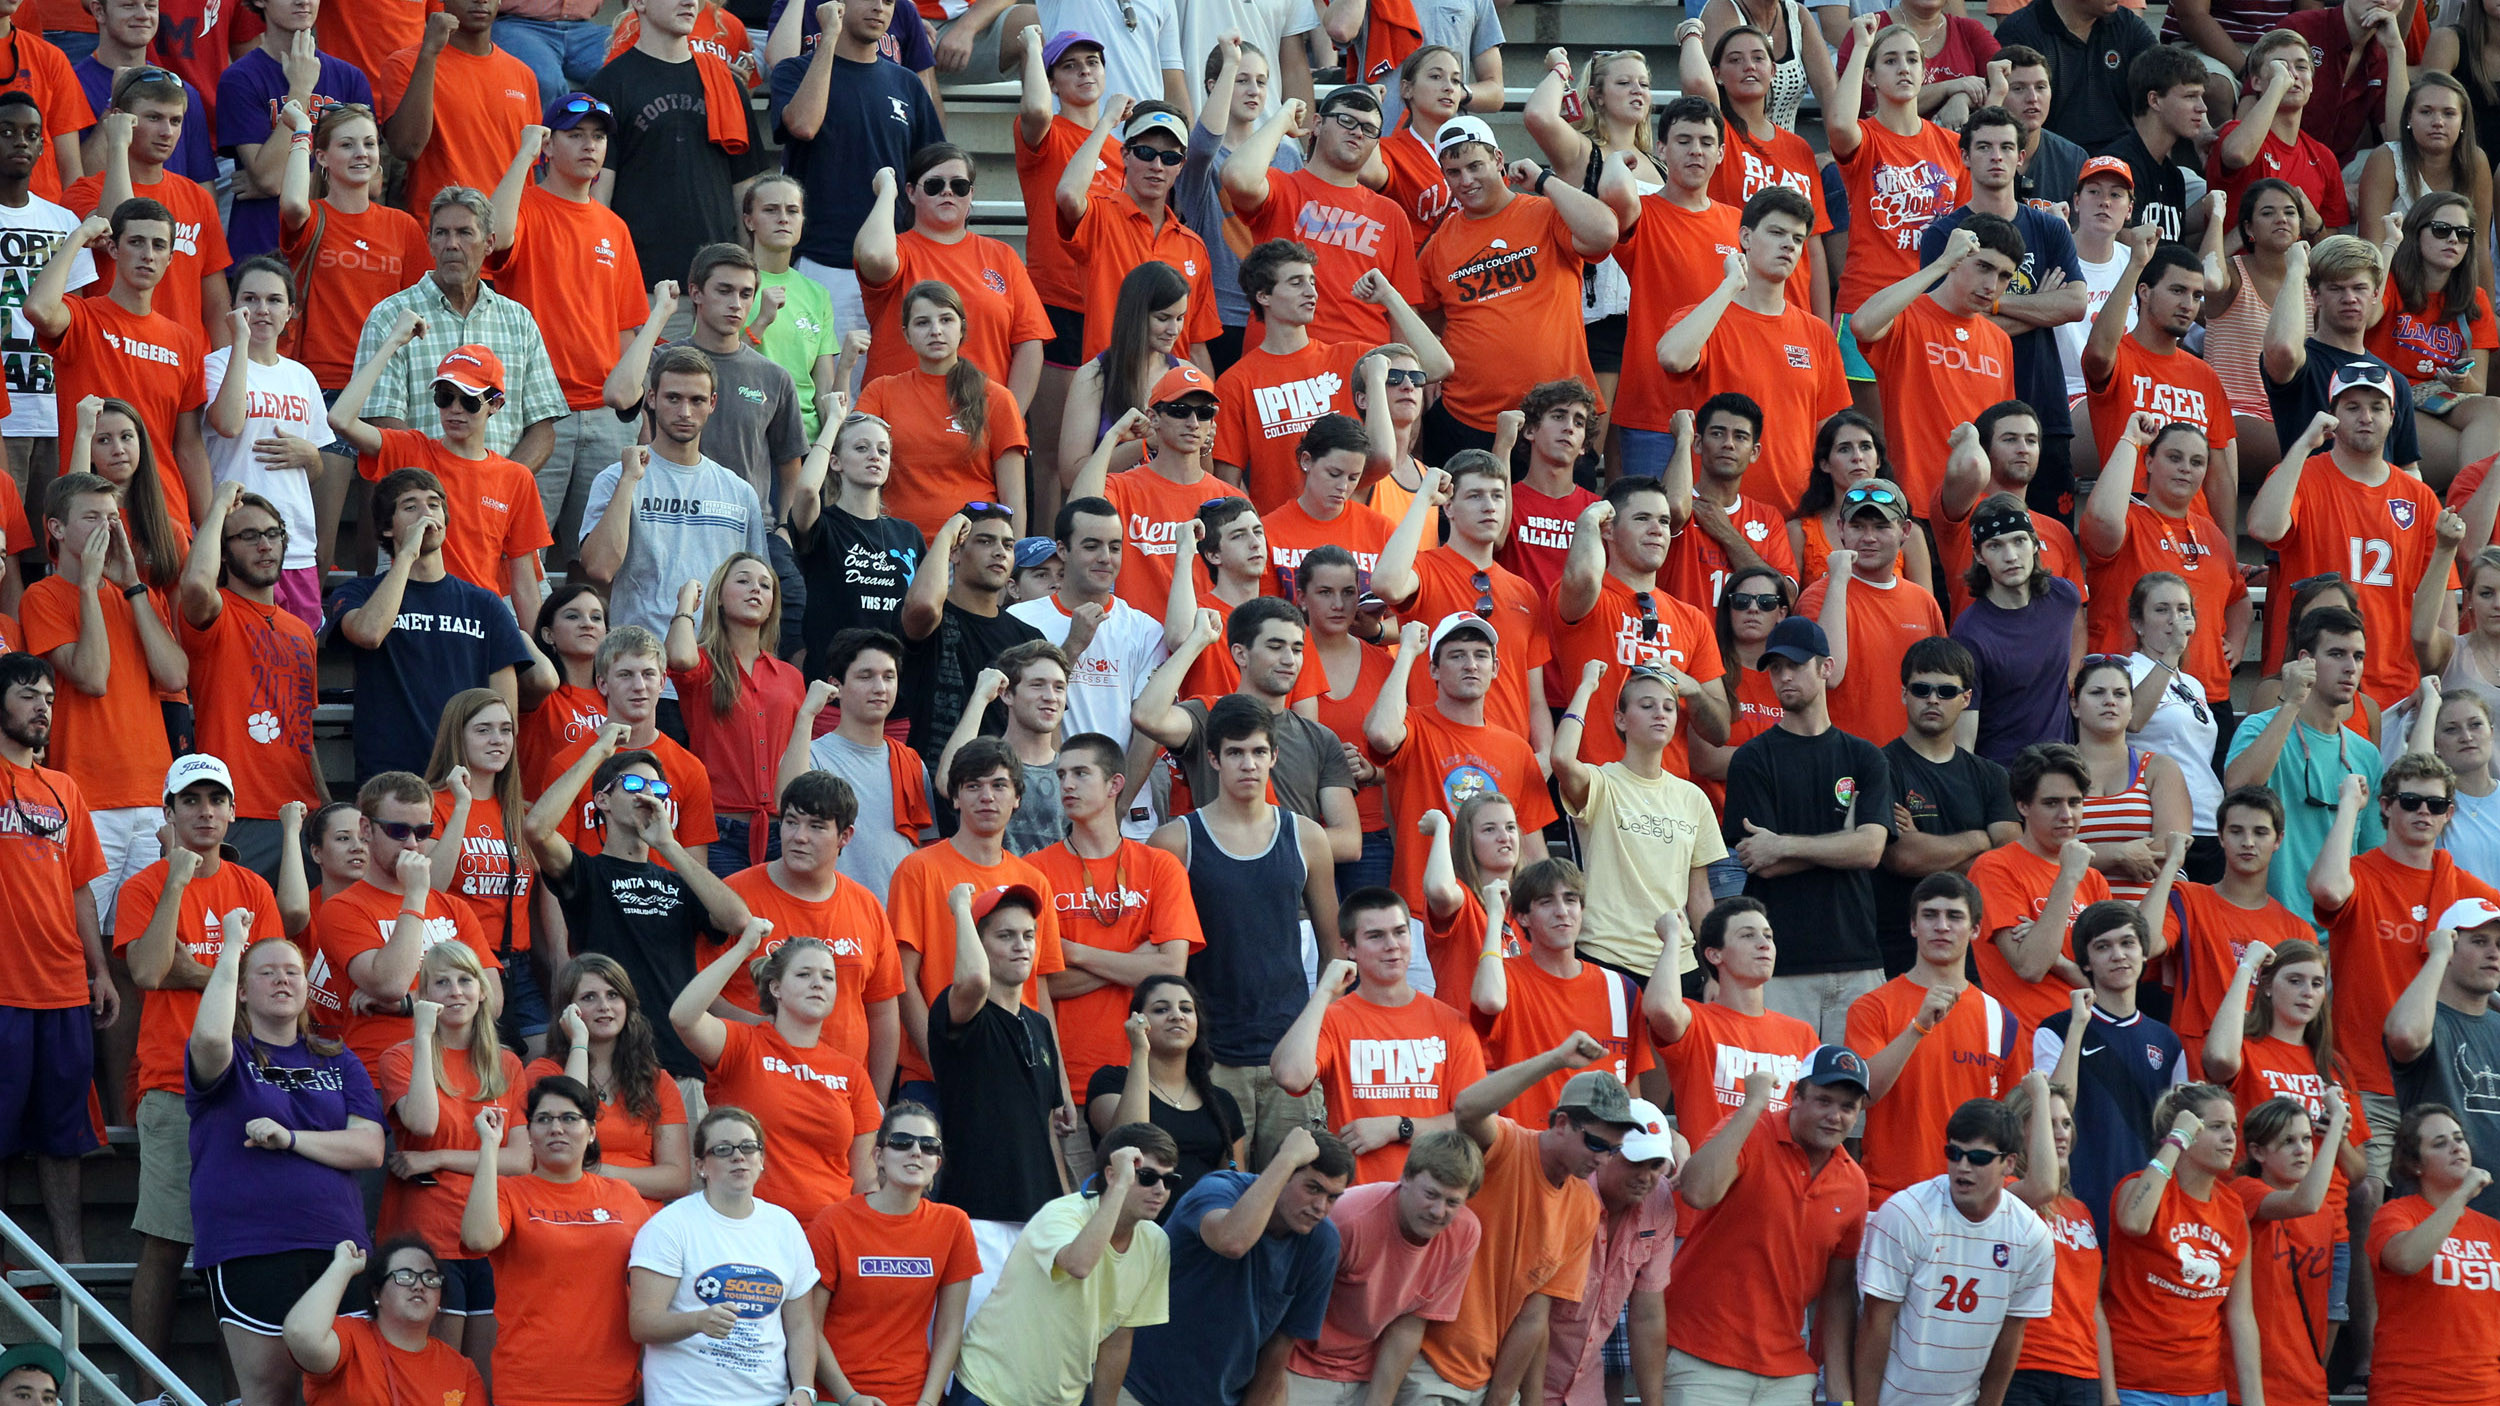 ClemsonTigers.com's Bald Girl on Campus: Clemson's Busy Weekend Sept. 6-8